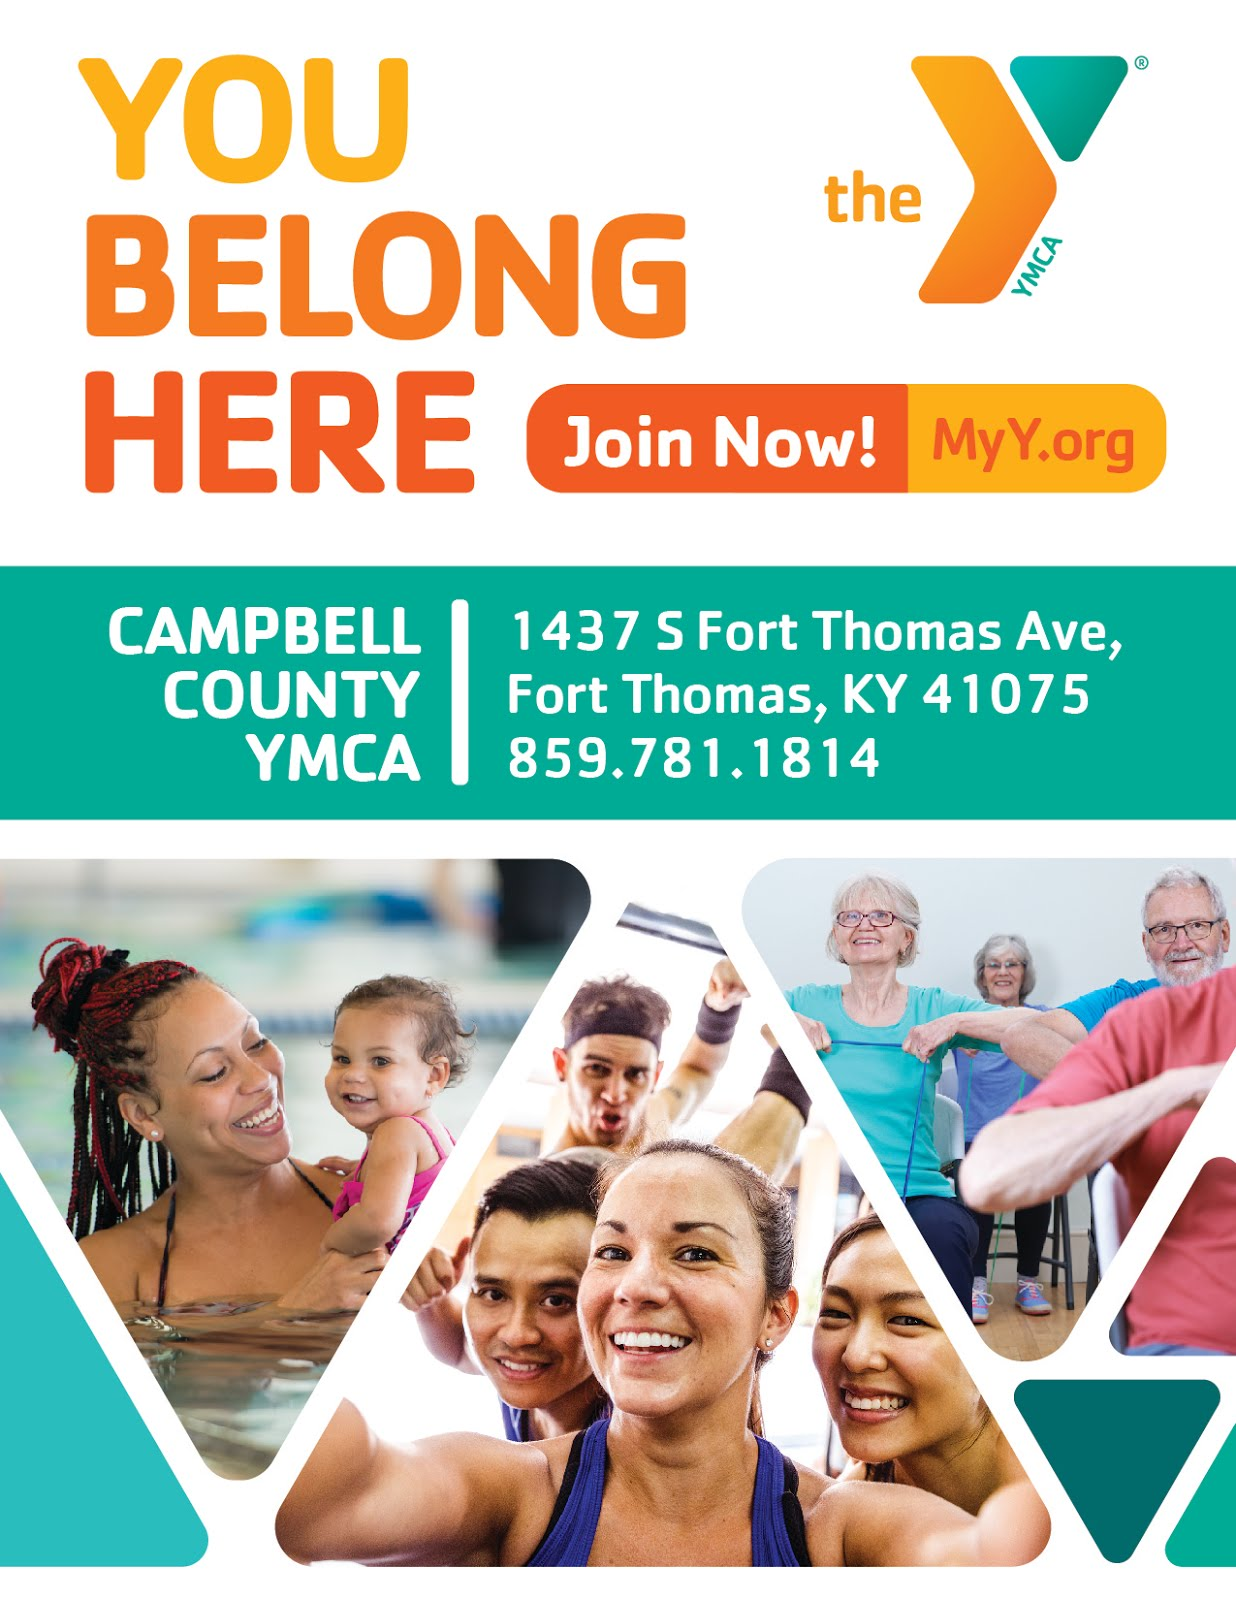 Campbell County YMCA